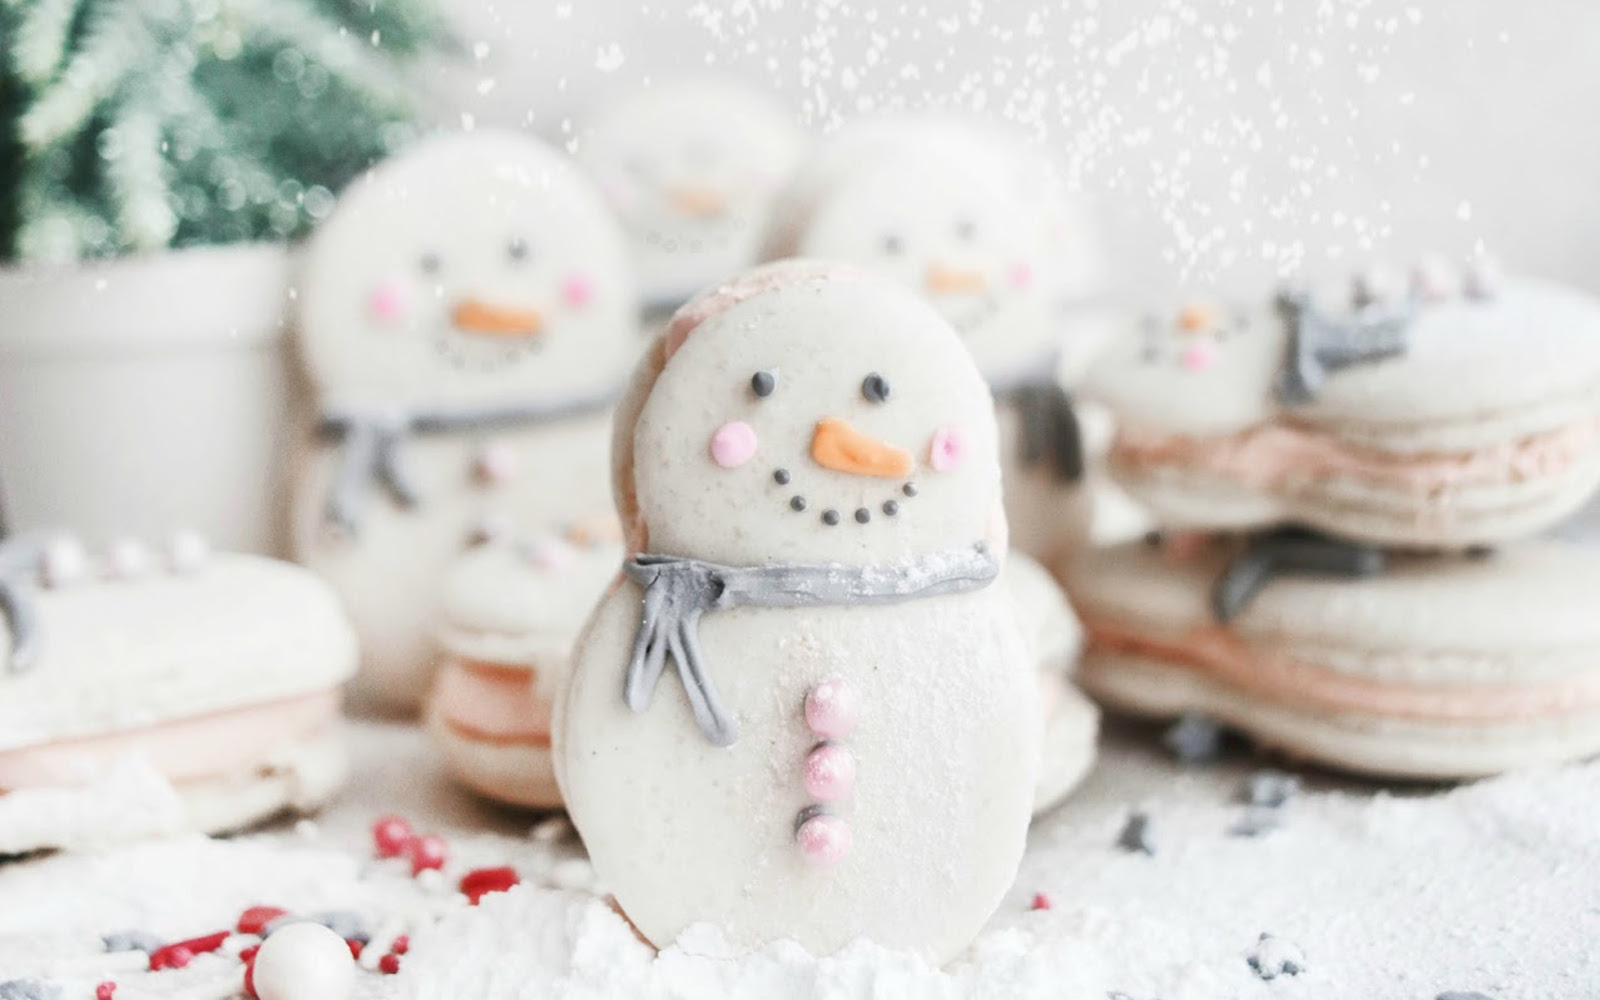 Vegan Snowman Macarons upright